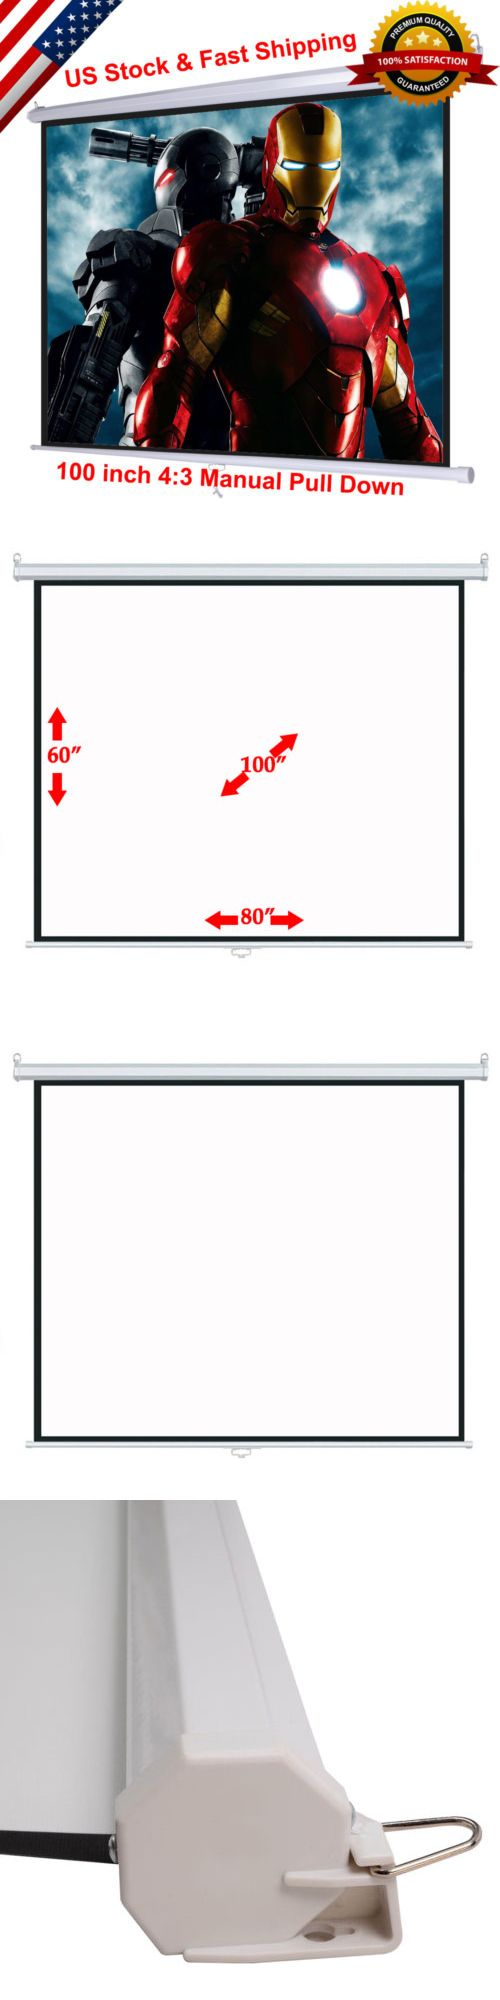 Projection Screens and Material: 100 4:3 Manual Pull Down Projection Projector Screen Home Theater Movie 80 X60 -> BUY IT NOW ONLY: $43.68 on eBay!